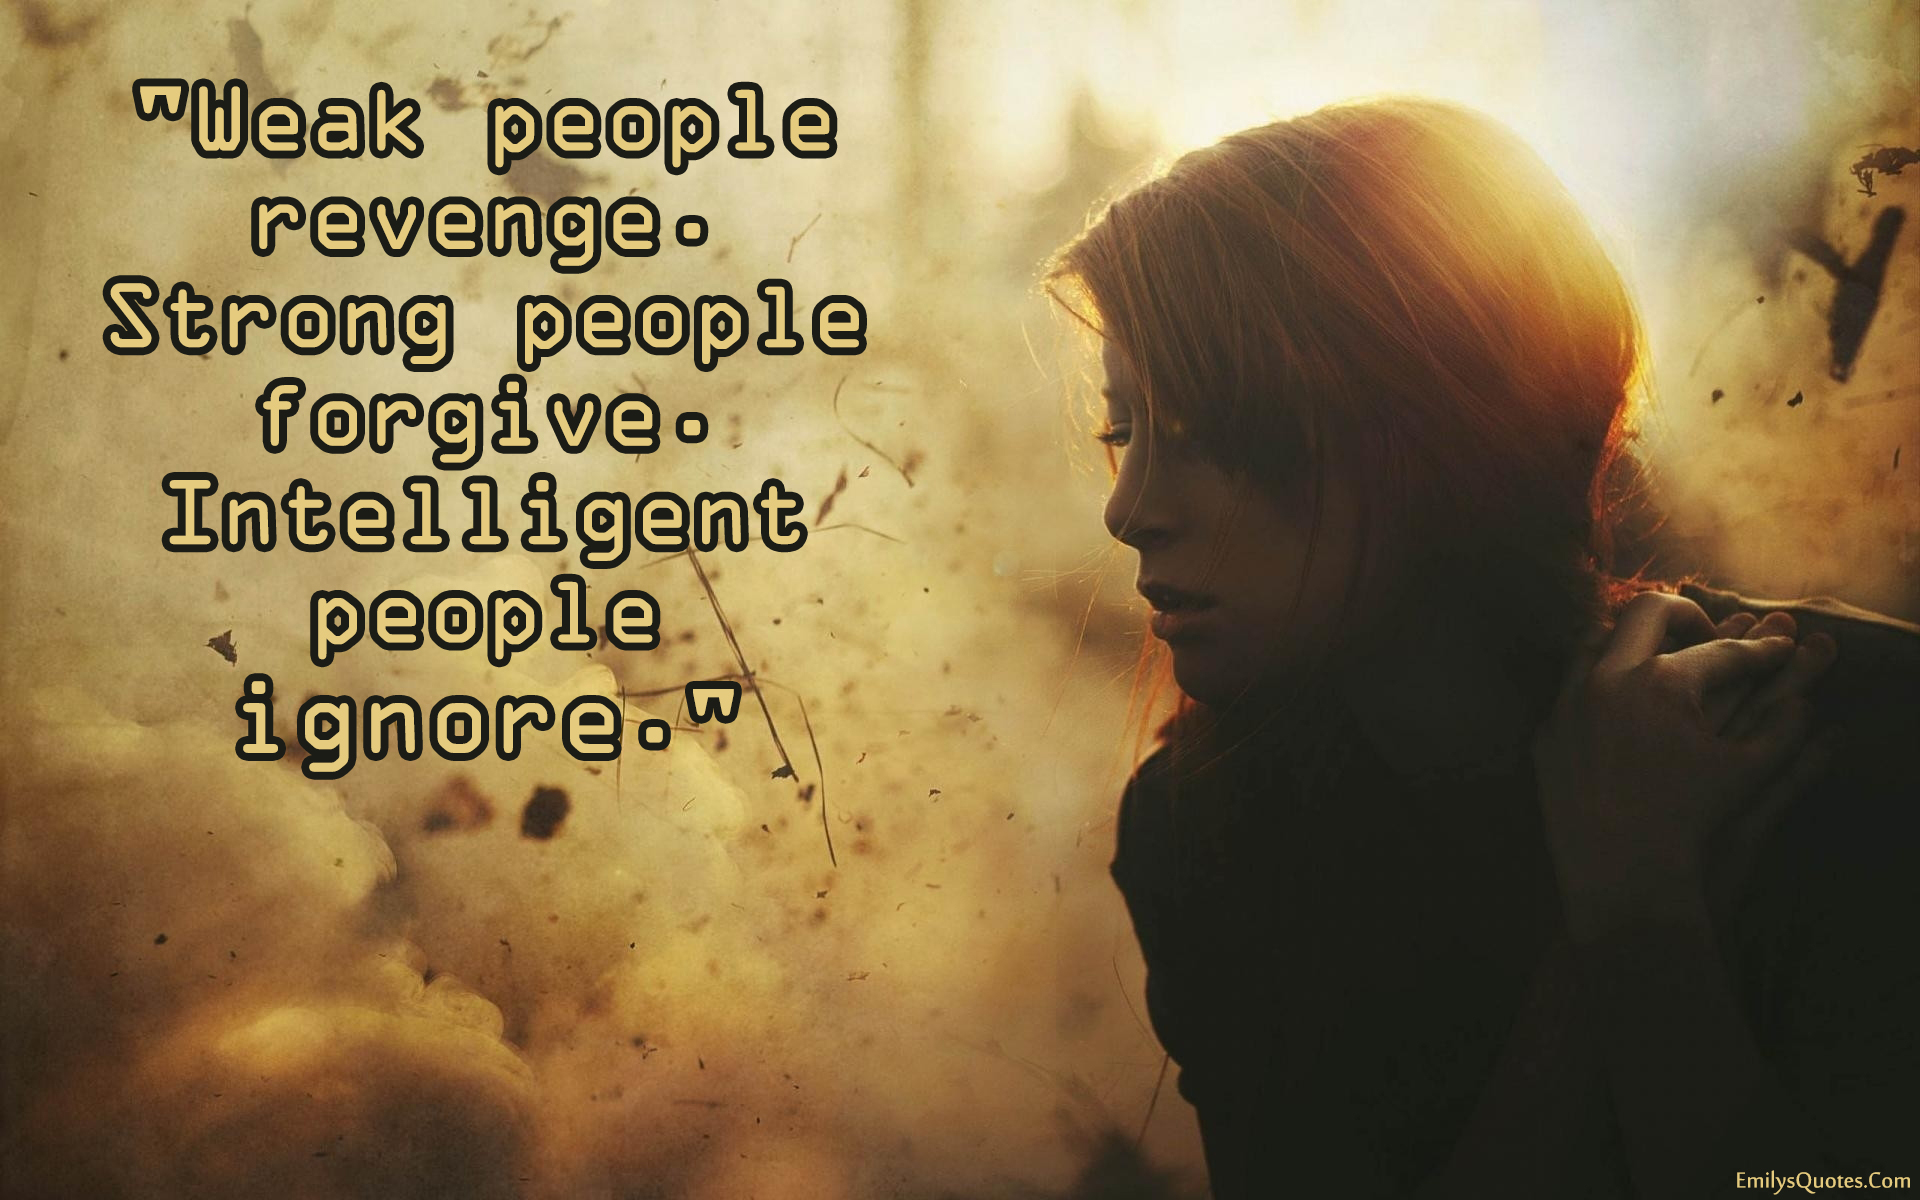 Wisdom About Life Quotes Weak People Revengestrong People Forgiveintelligent People